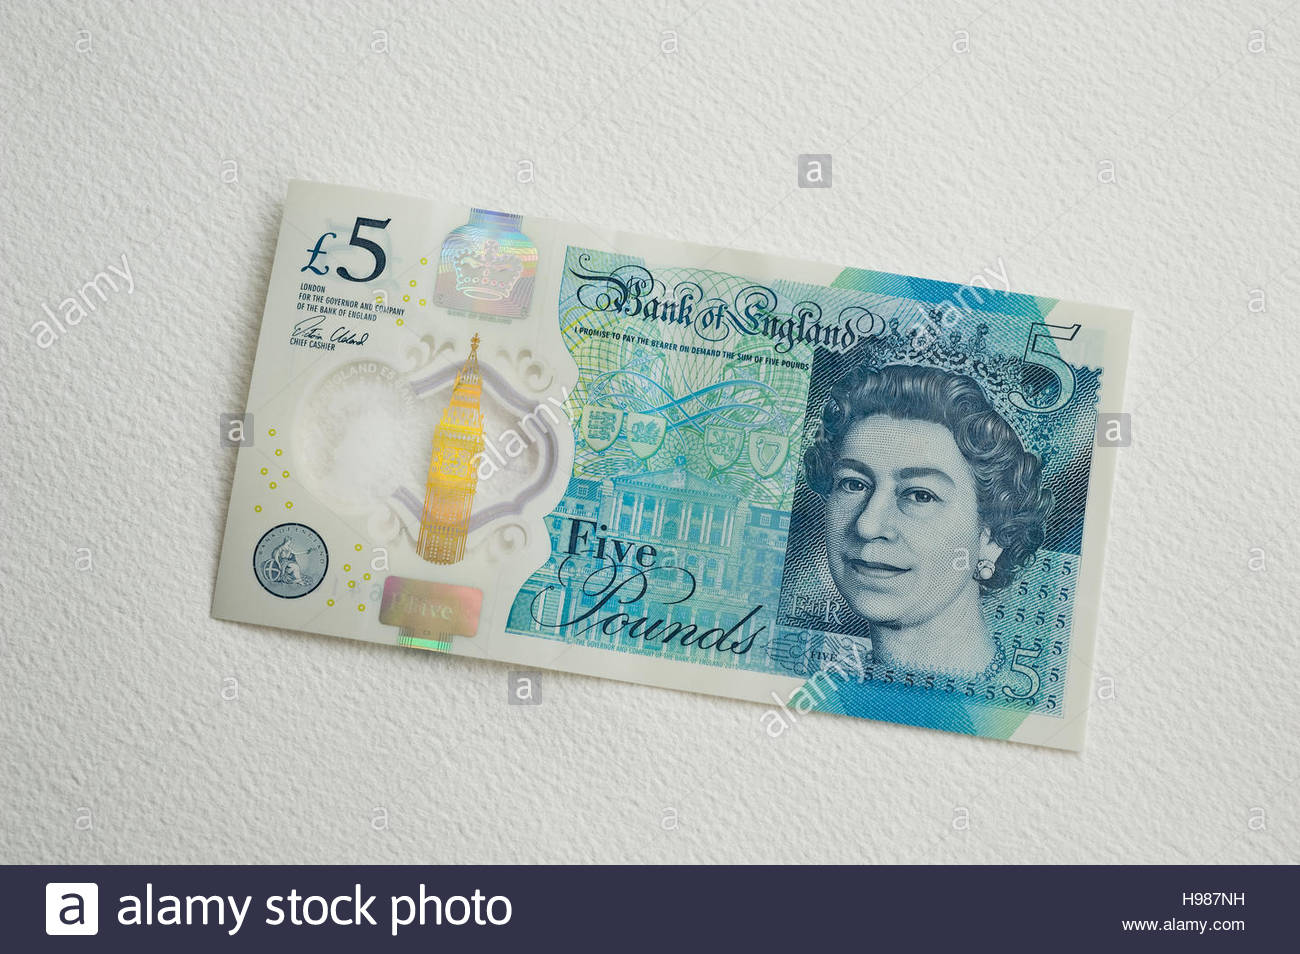 One new British sterling five pound notes with security features, see-through window and metallic image. - Stock Image